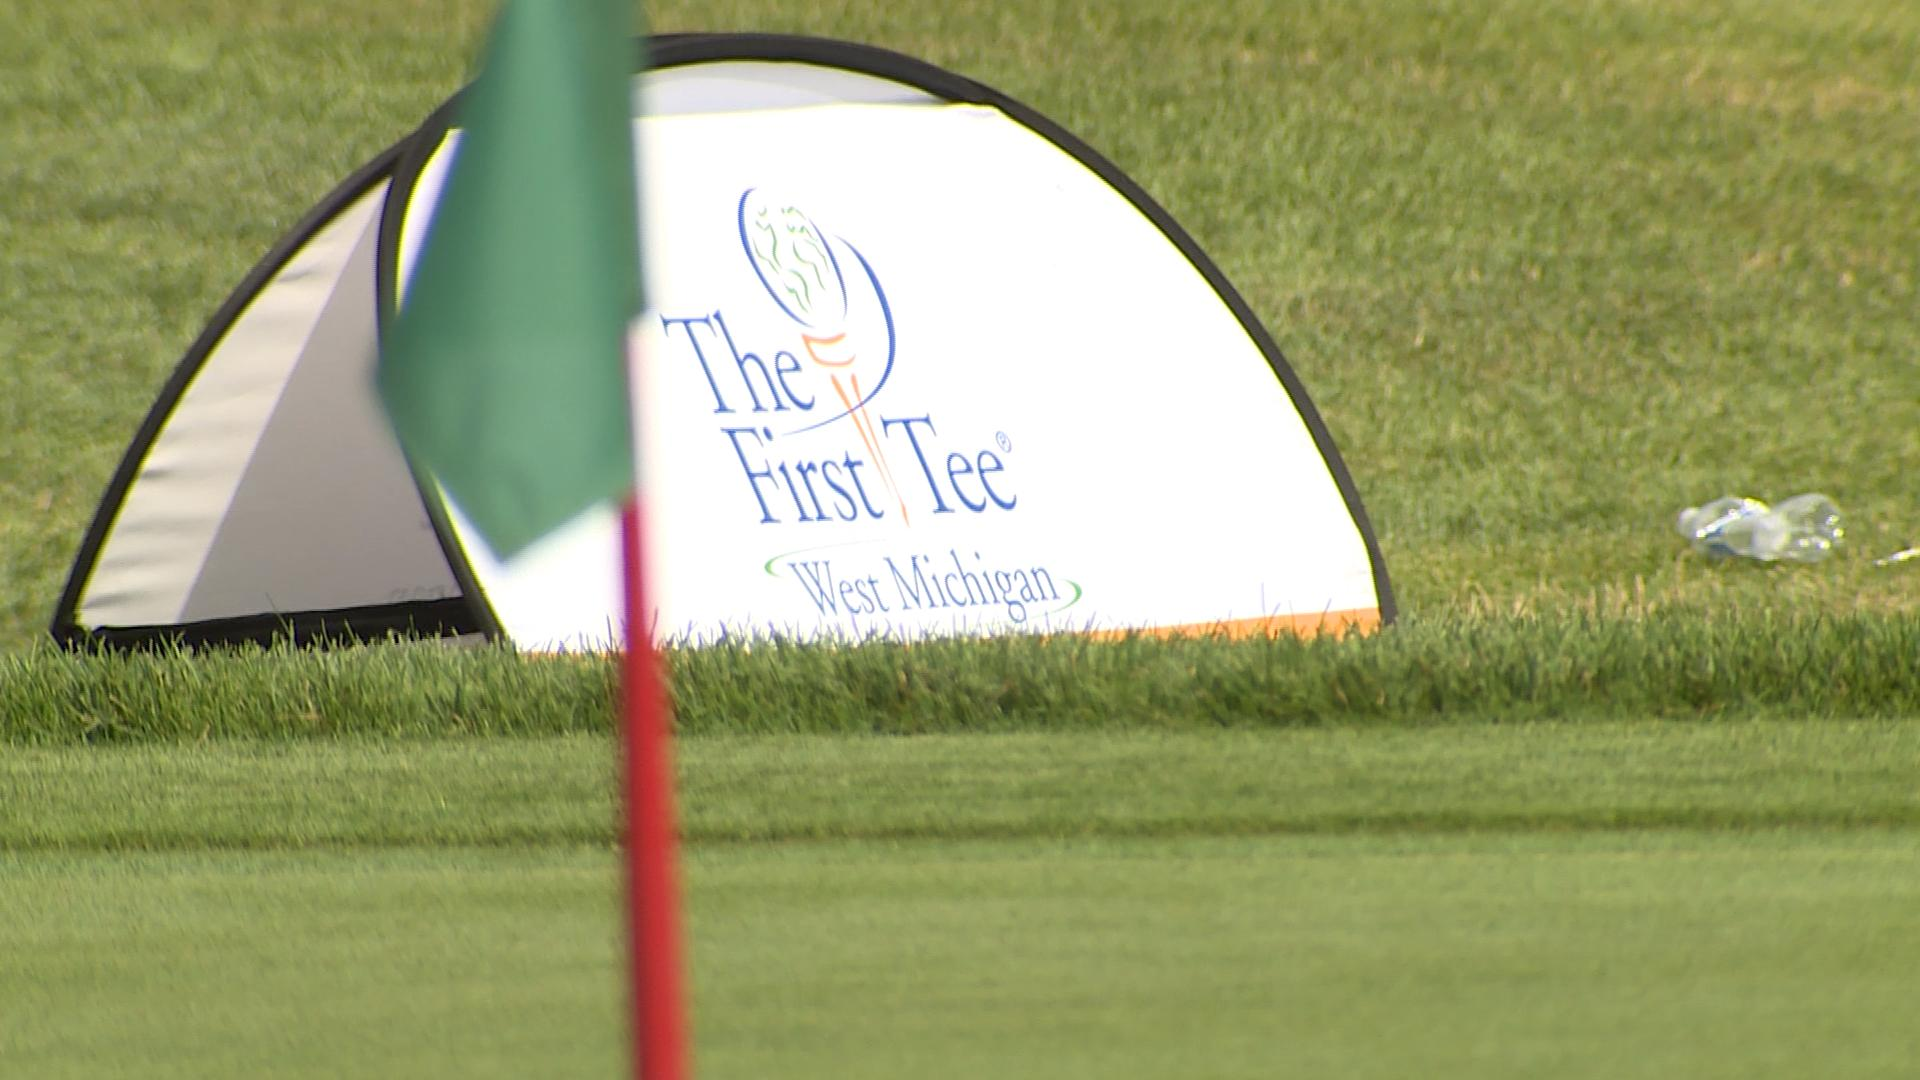 the first tee west michigan